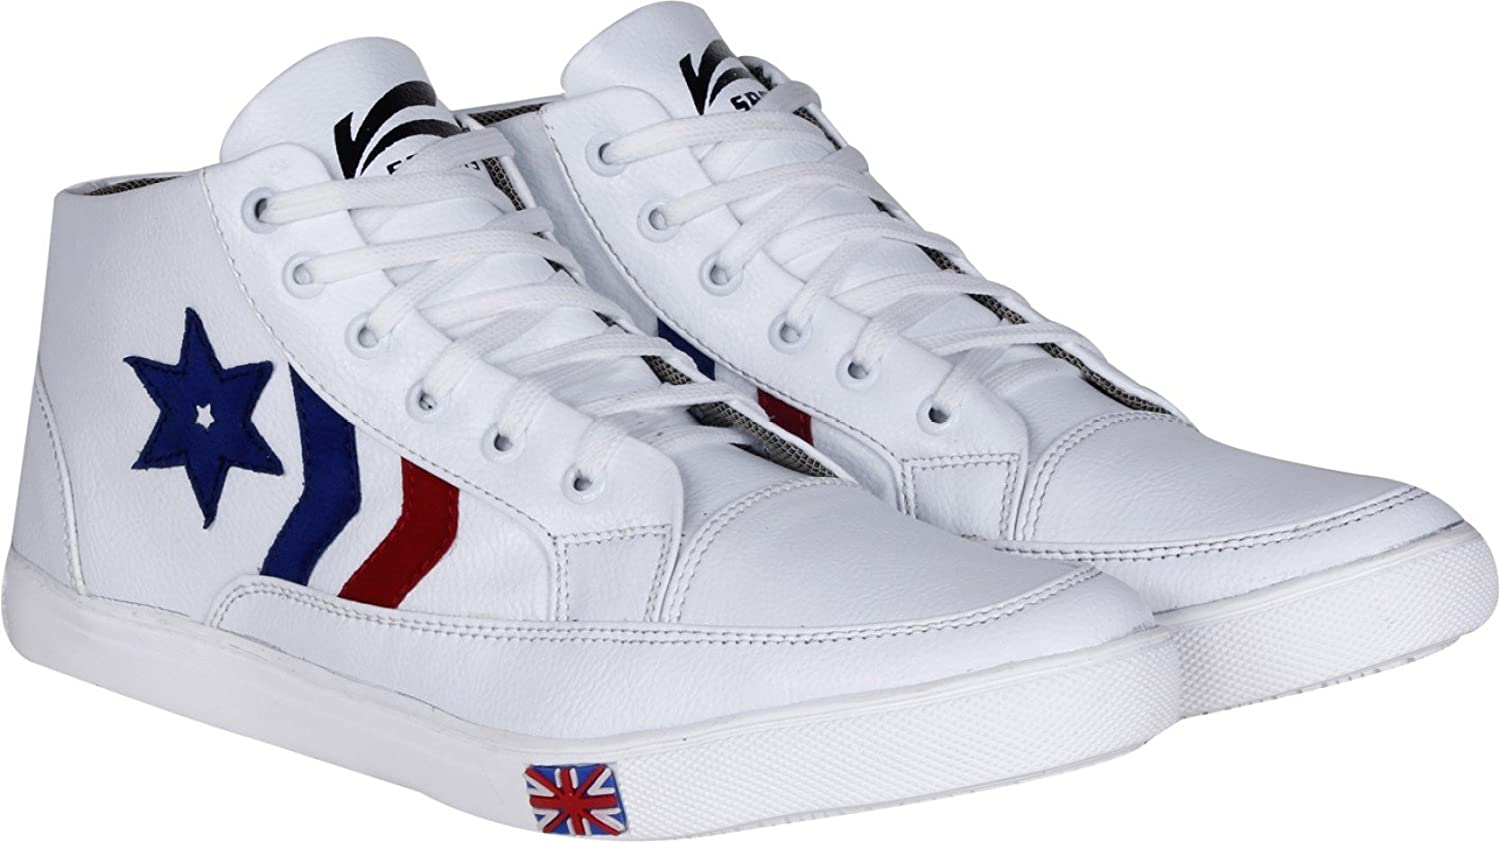 Mid Ankle Length Sneakers Casual Shoes